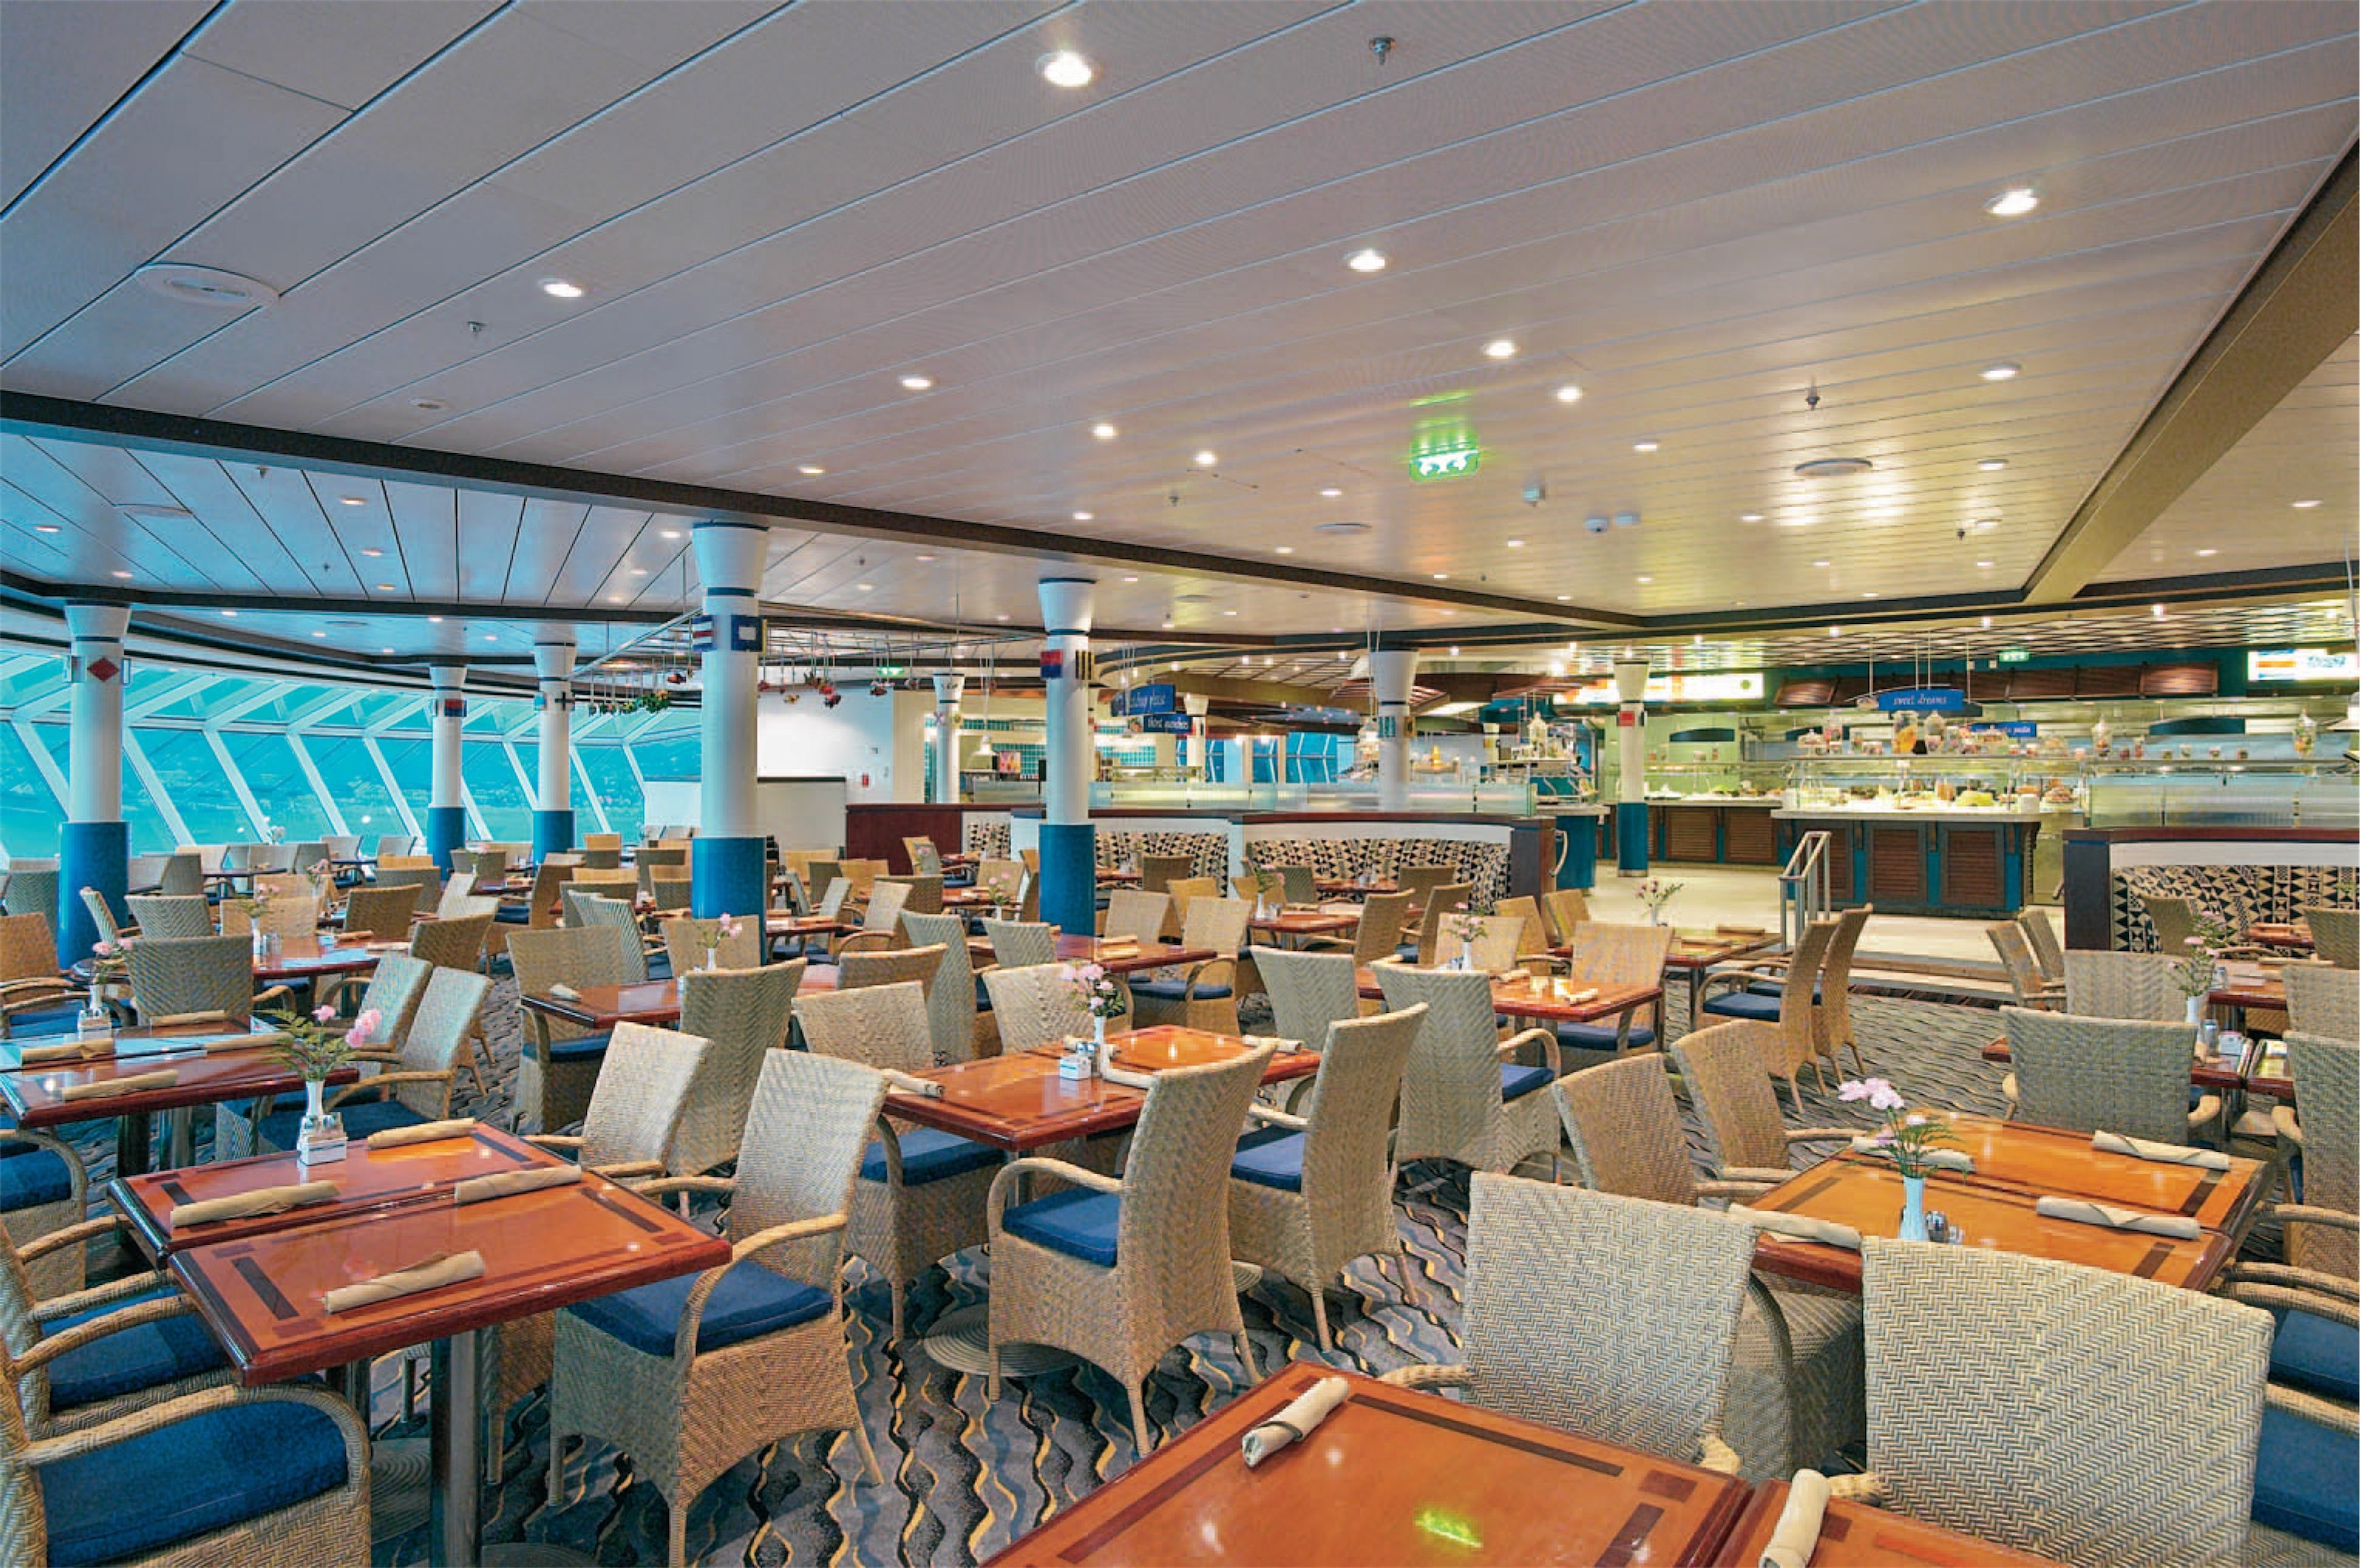 Royal Caribbean International Mariner of the Seas Interior Windjammer.jpg